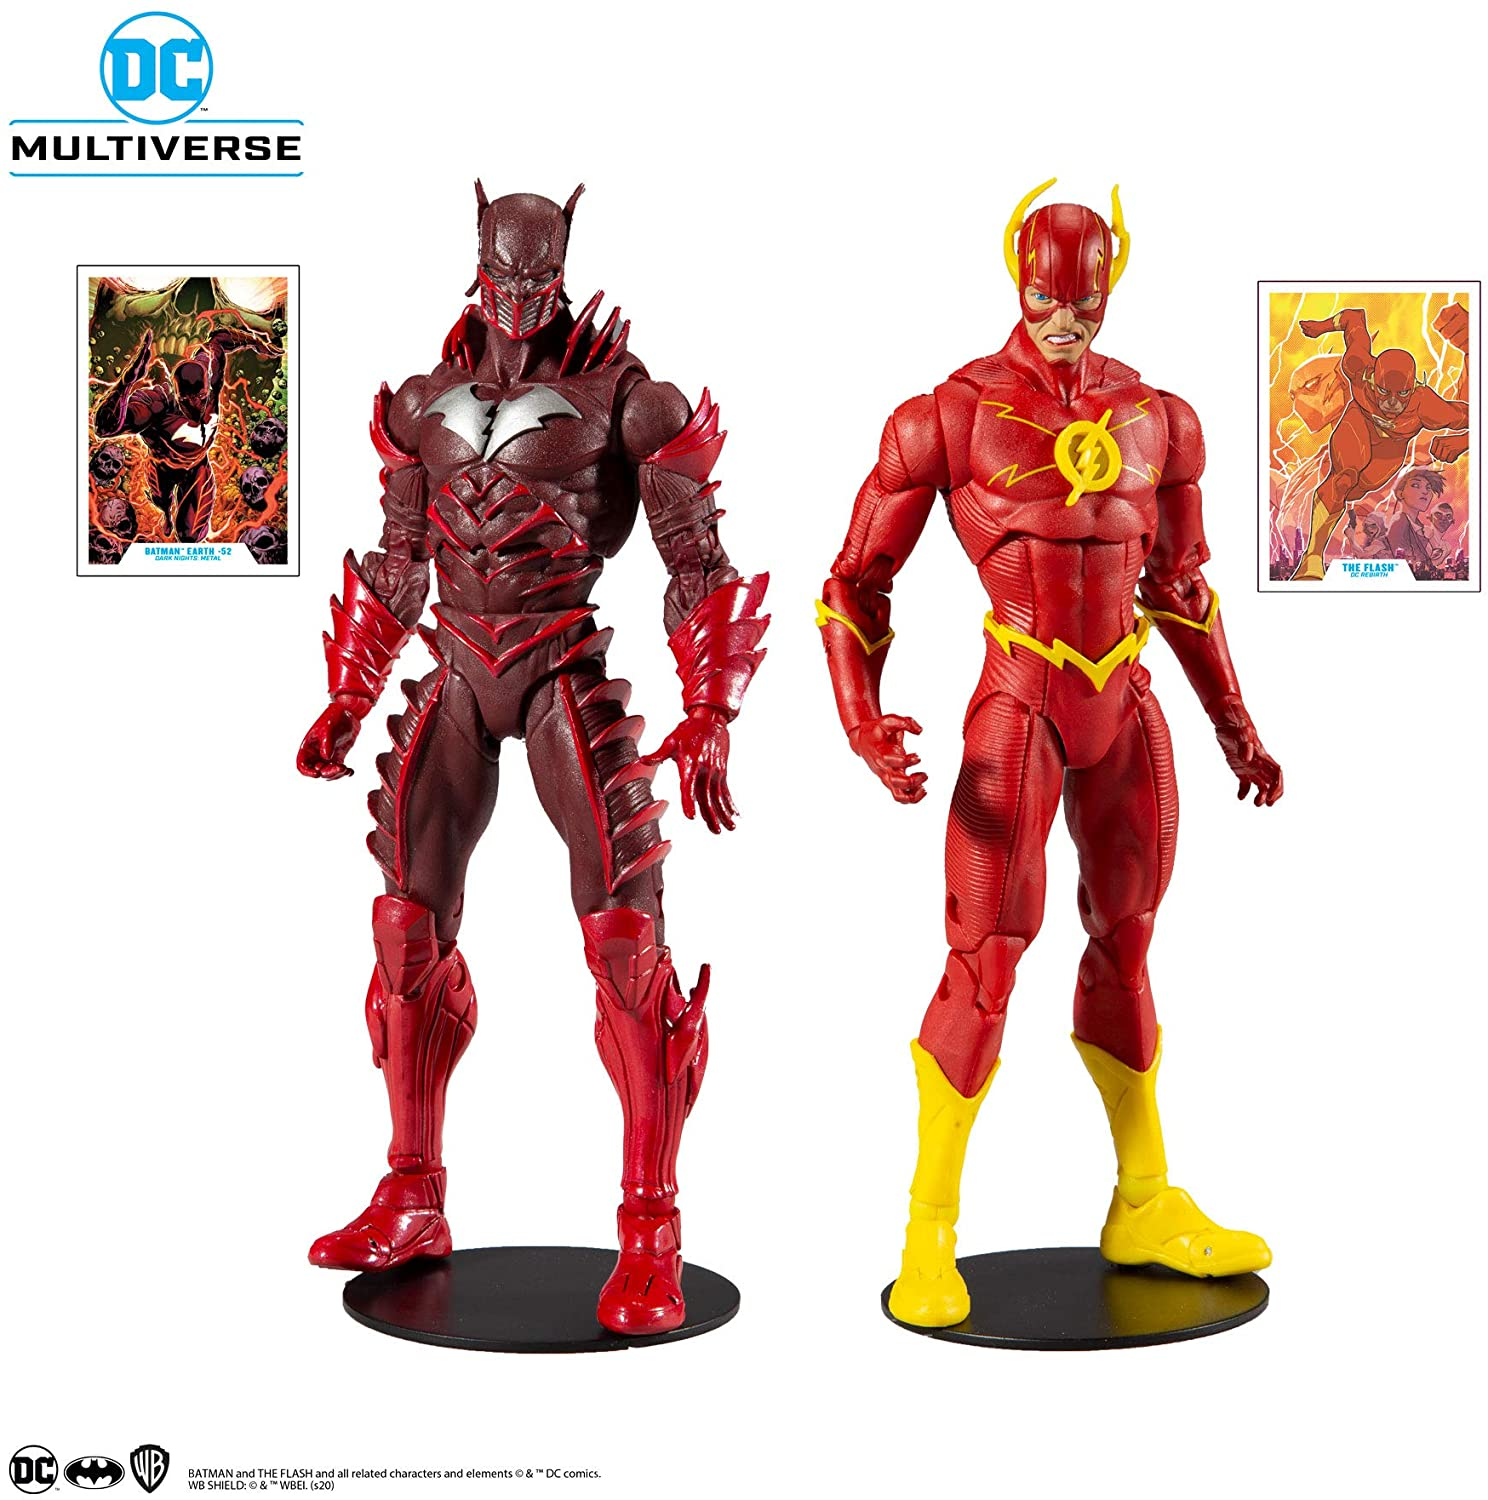 DC EARTH 52 BATMAN vs. FLASH - DC MULTIVERSE McFarlane Toys 7-Inch Action Figure 2-PACK